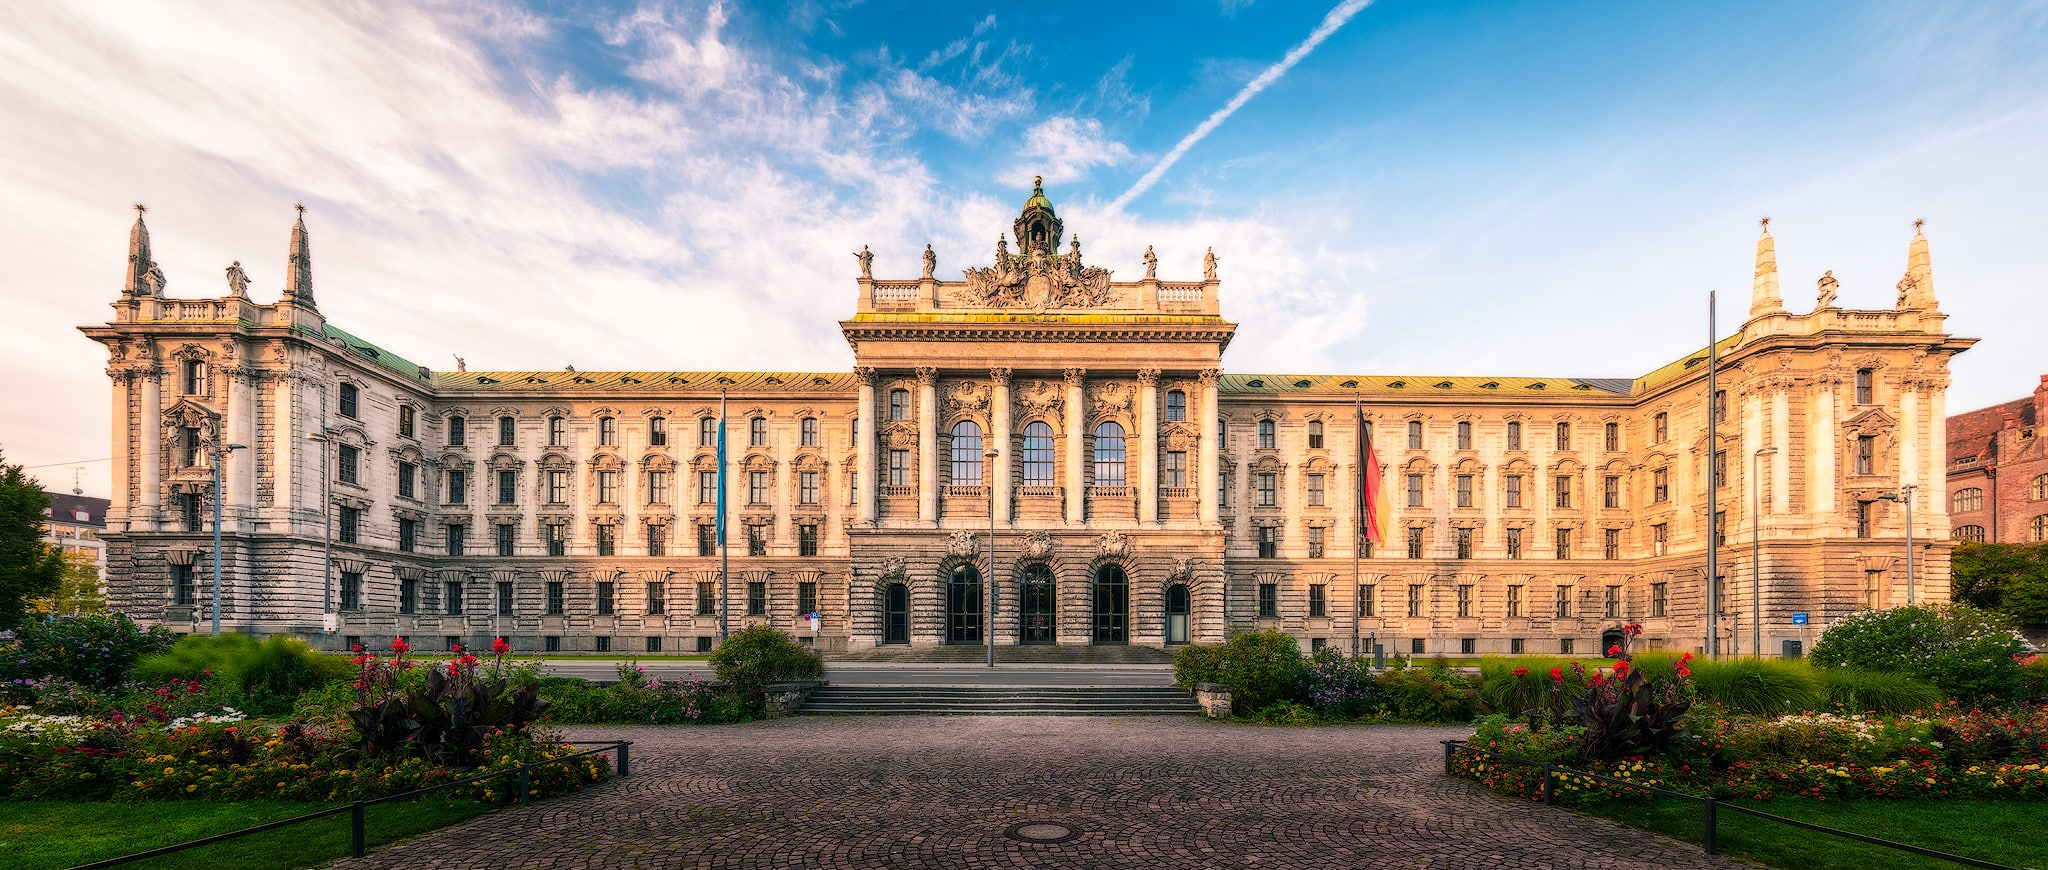 Justizpalast (Palace of Justice) in Munich in Bavaria, Germany